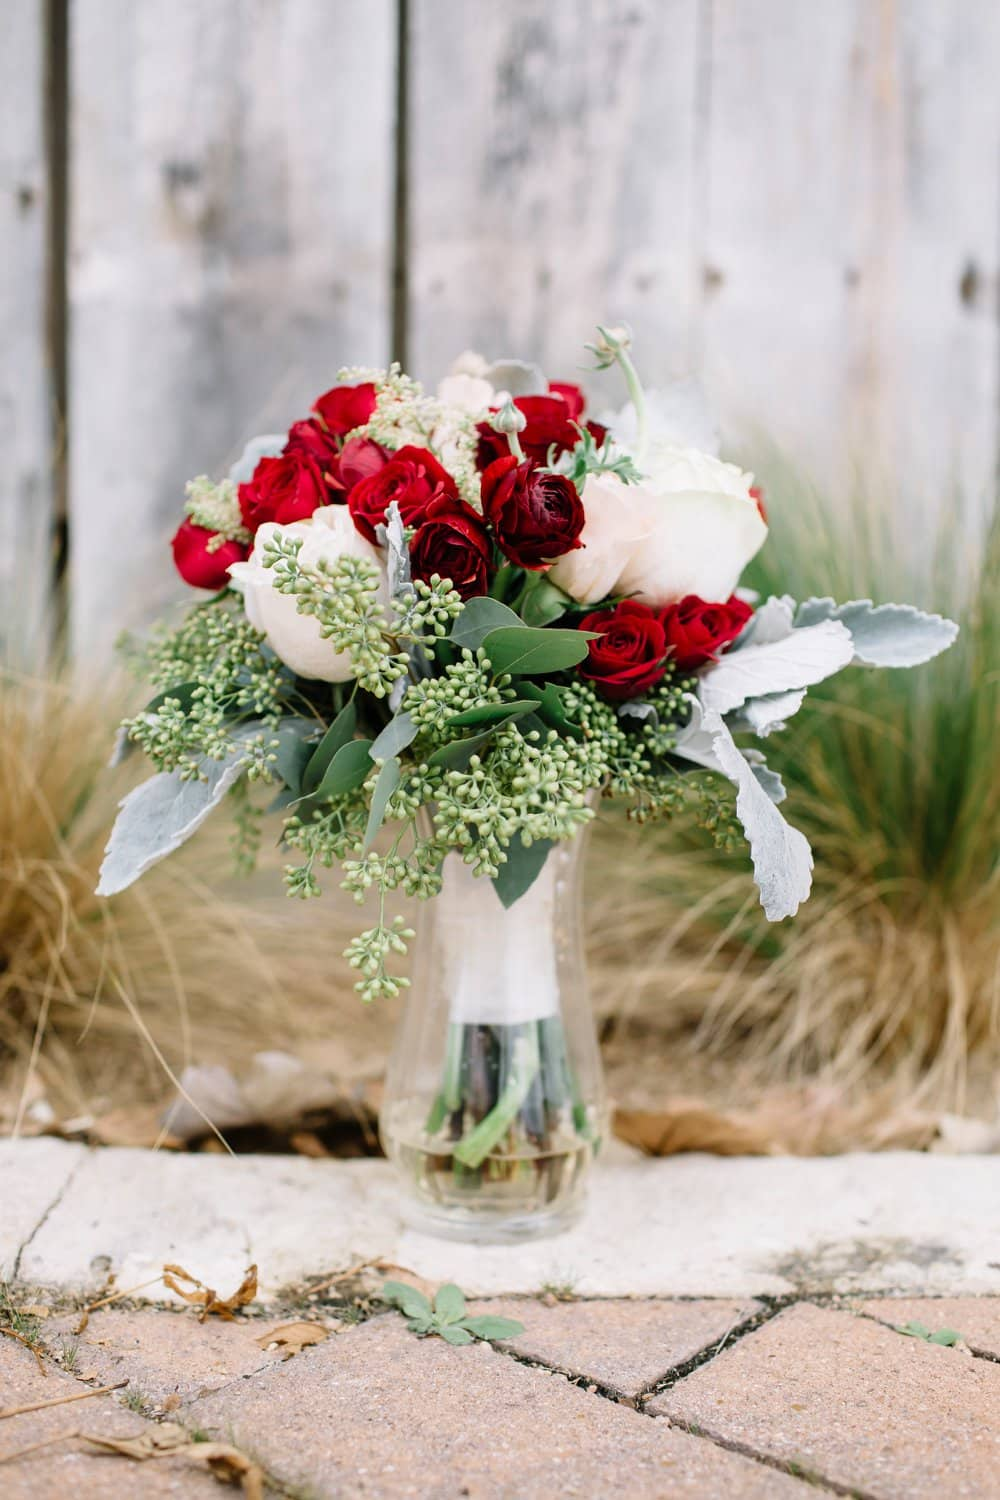 red rose bouquet, winter wedding flowers